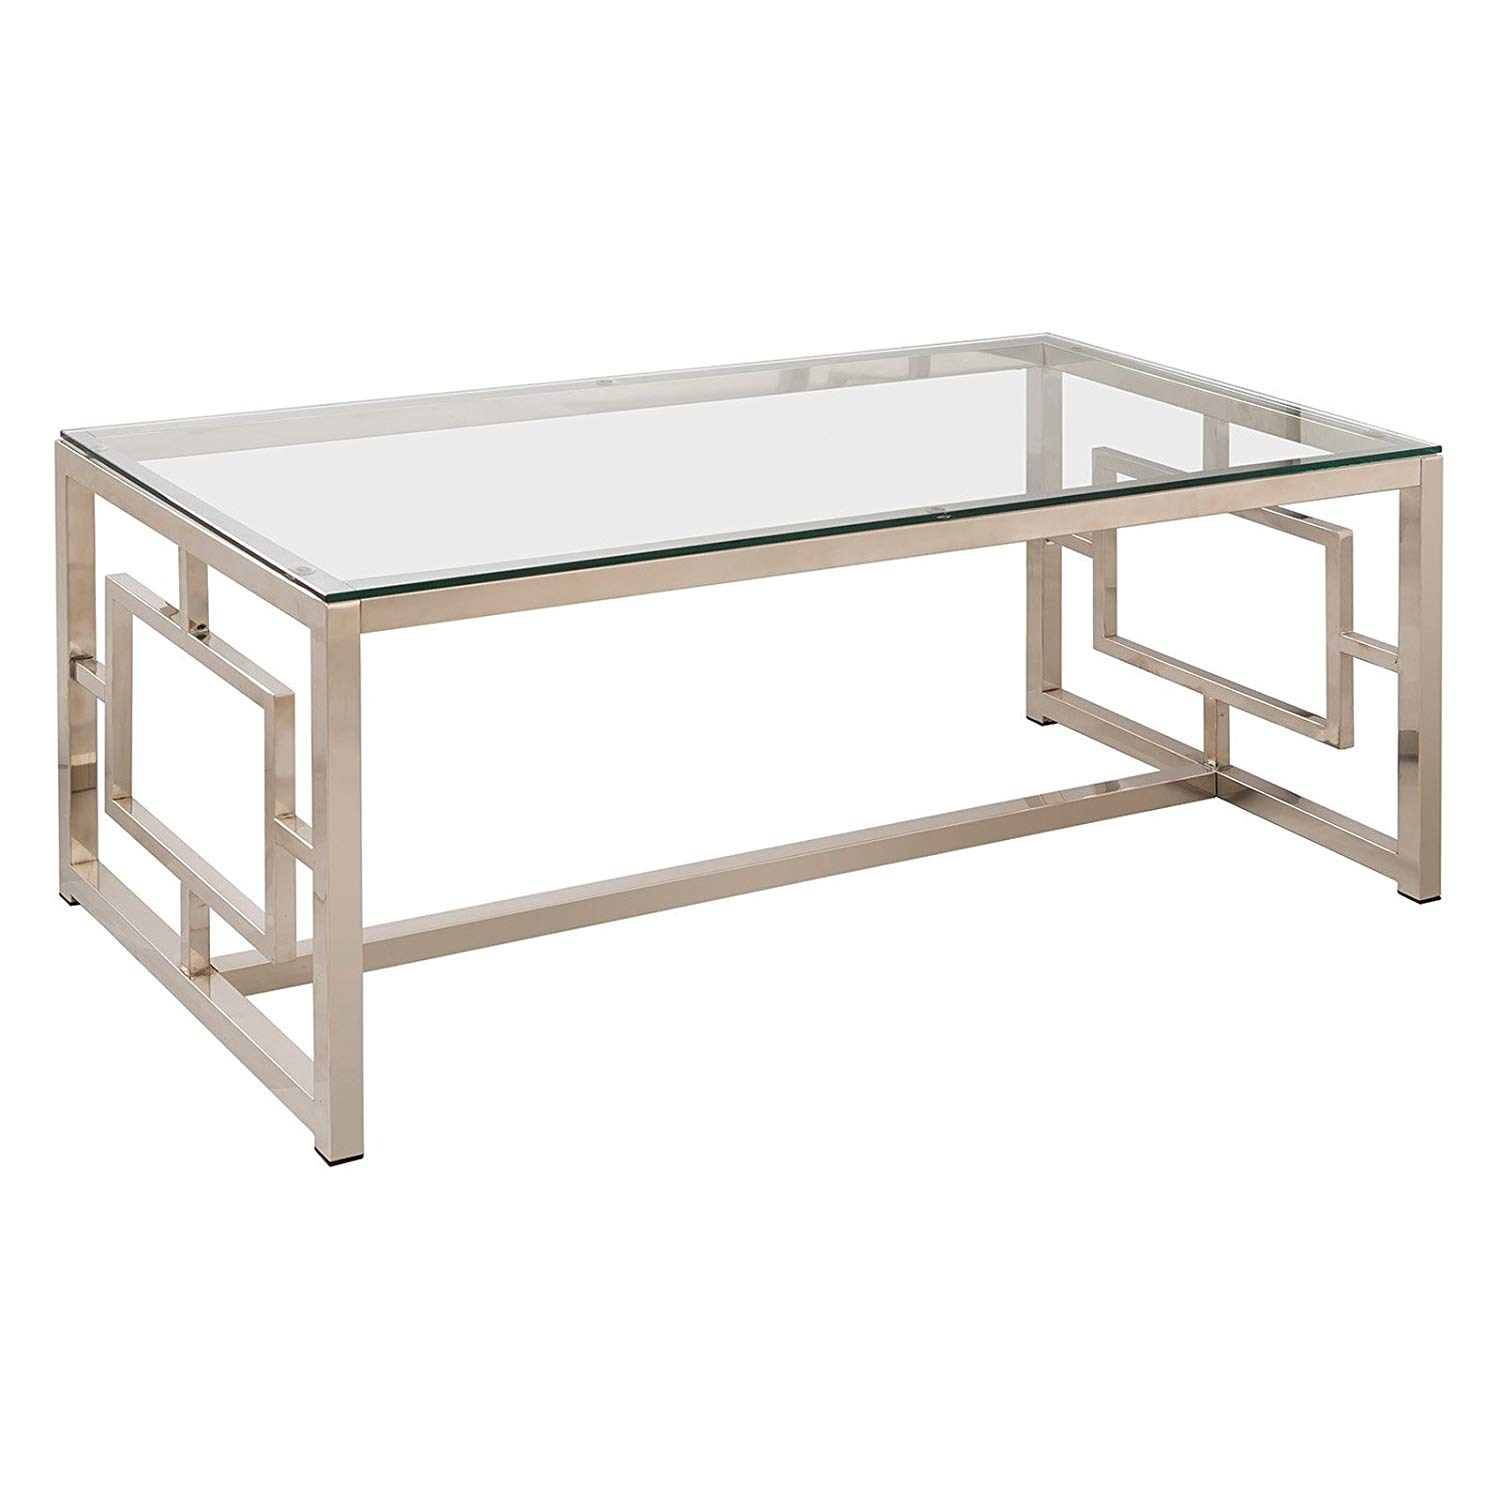 Contemporary Coffee Table, Nickel Finish, Living Room Furniture, Tempered Glass Top, Glass, Metal, Rectangle Shape, Bundle with Our Expert Guide with Tips for Home Arrangement